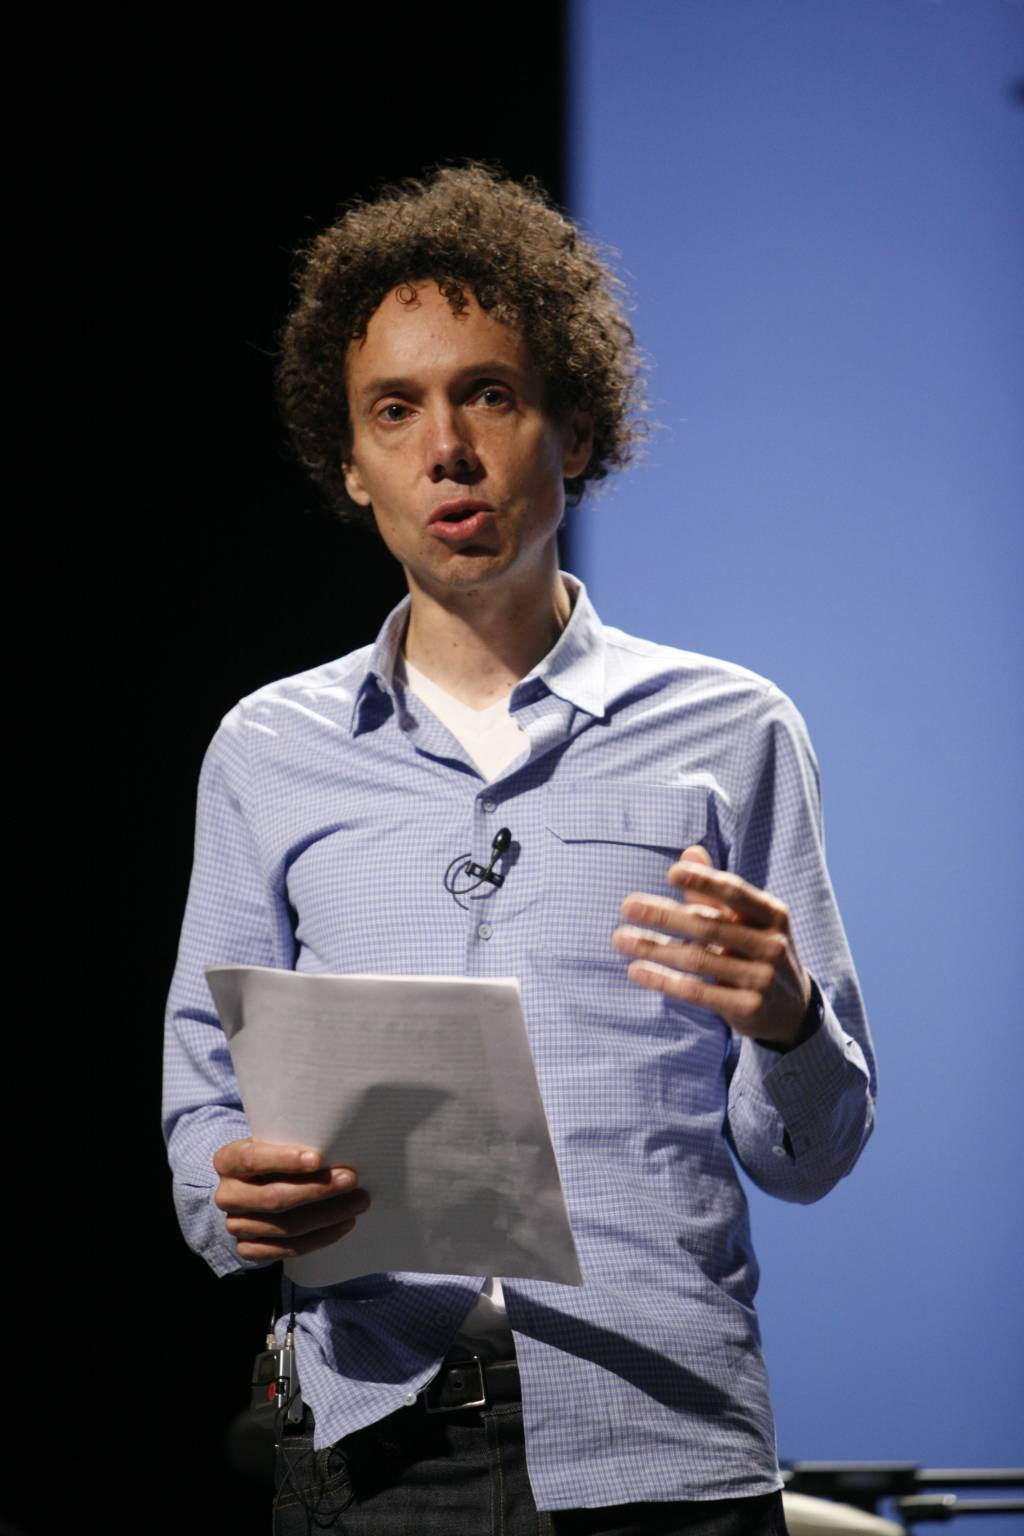 gladwell blink essay This is the prescription of blink, the popular psychology bestseller from malcolm gladwell, staff writer for the new yorker and author of the cult business book the tipping point blink introduces us to the power of thin-slicing by way of example.